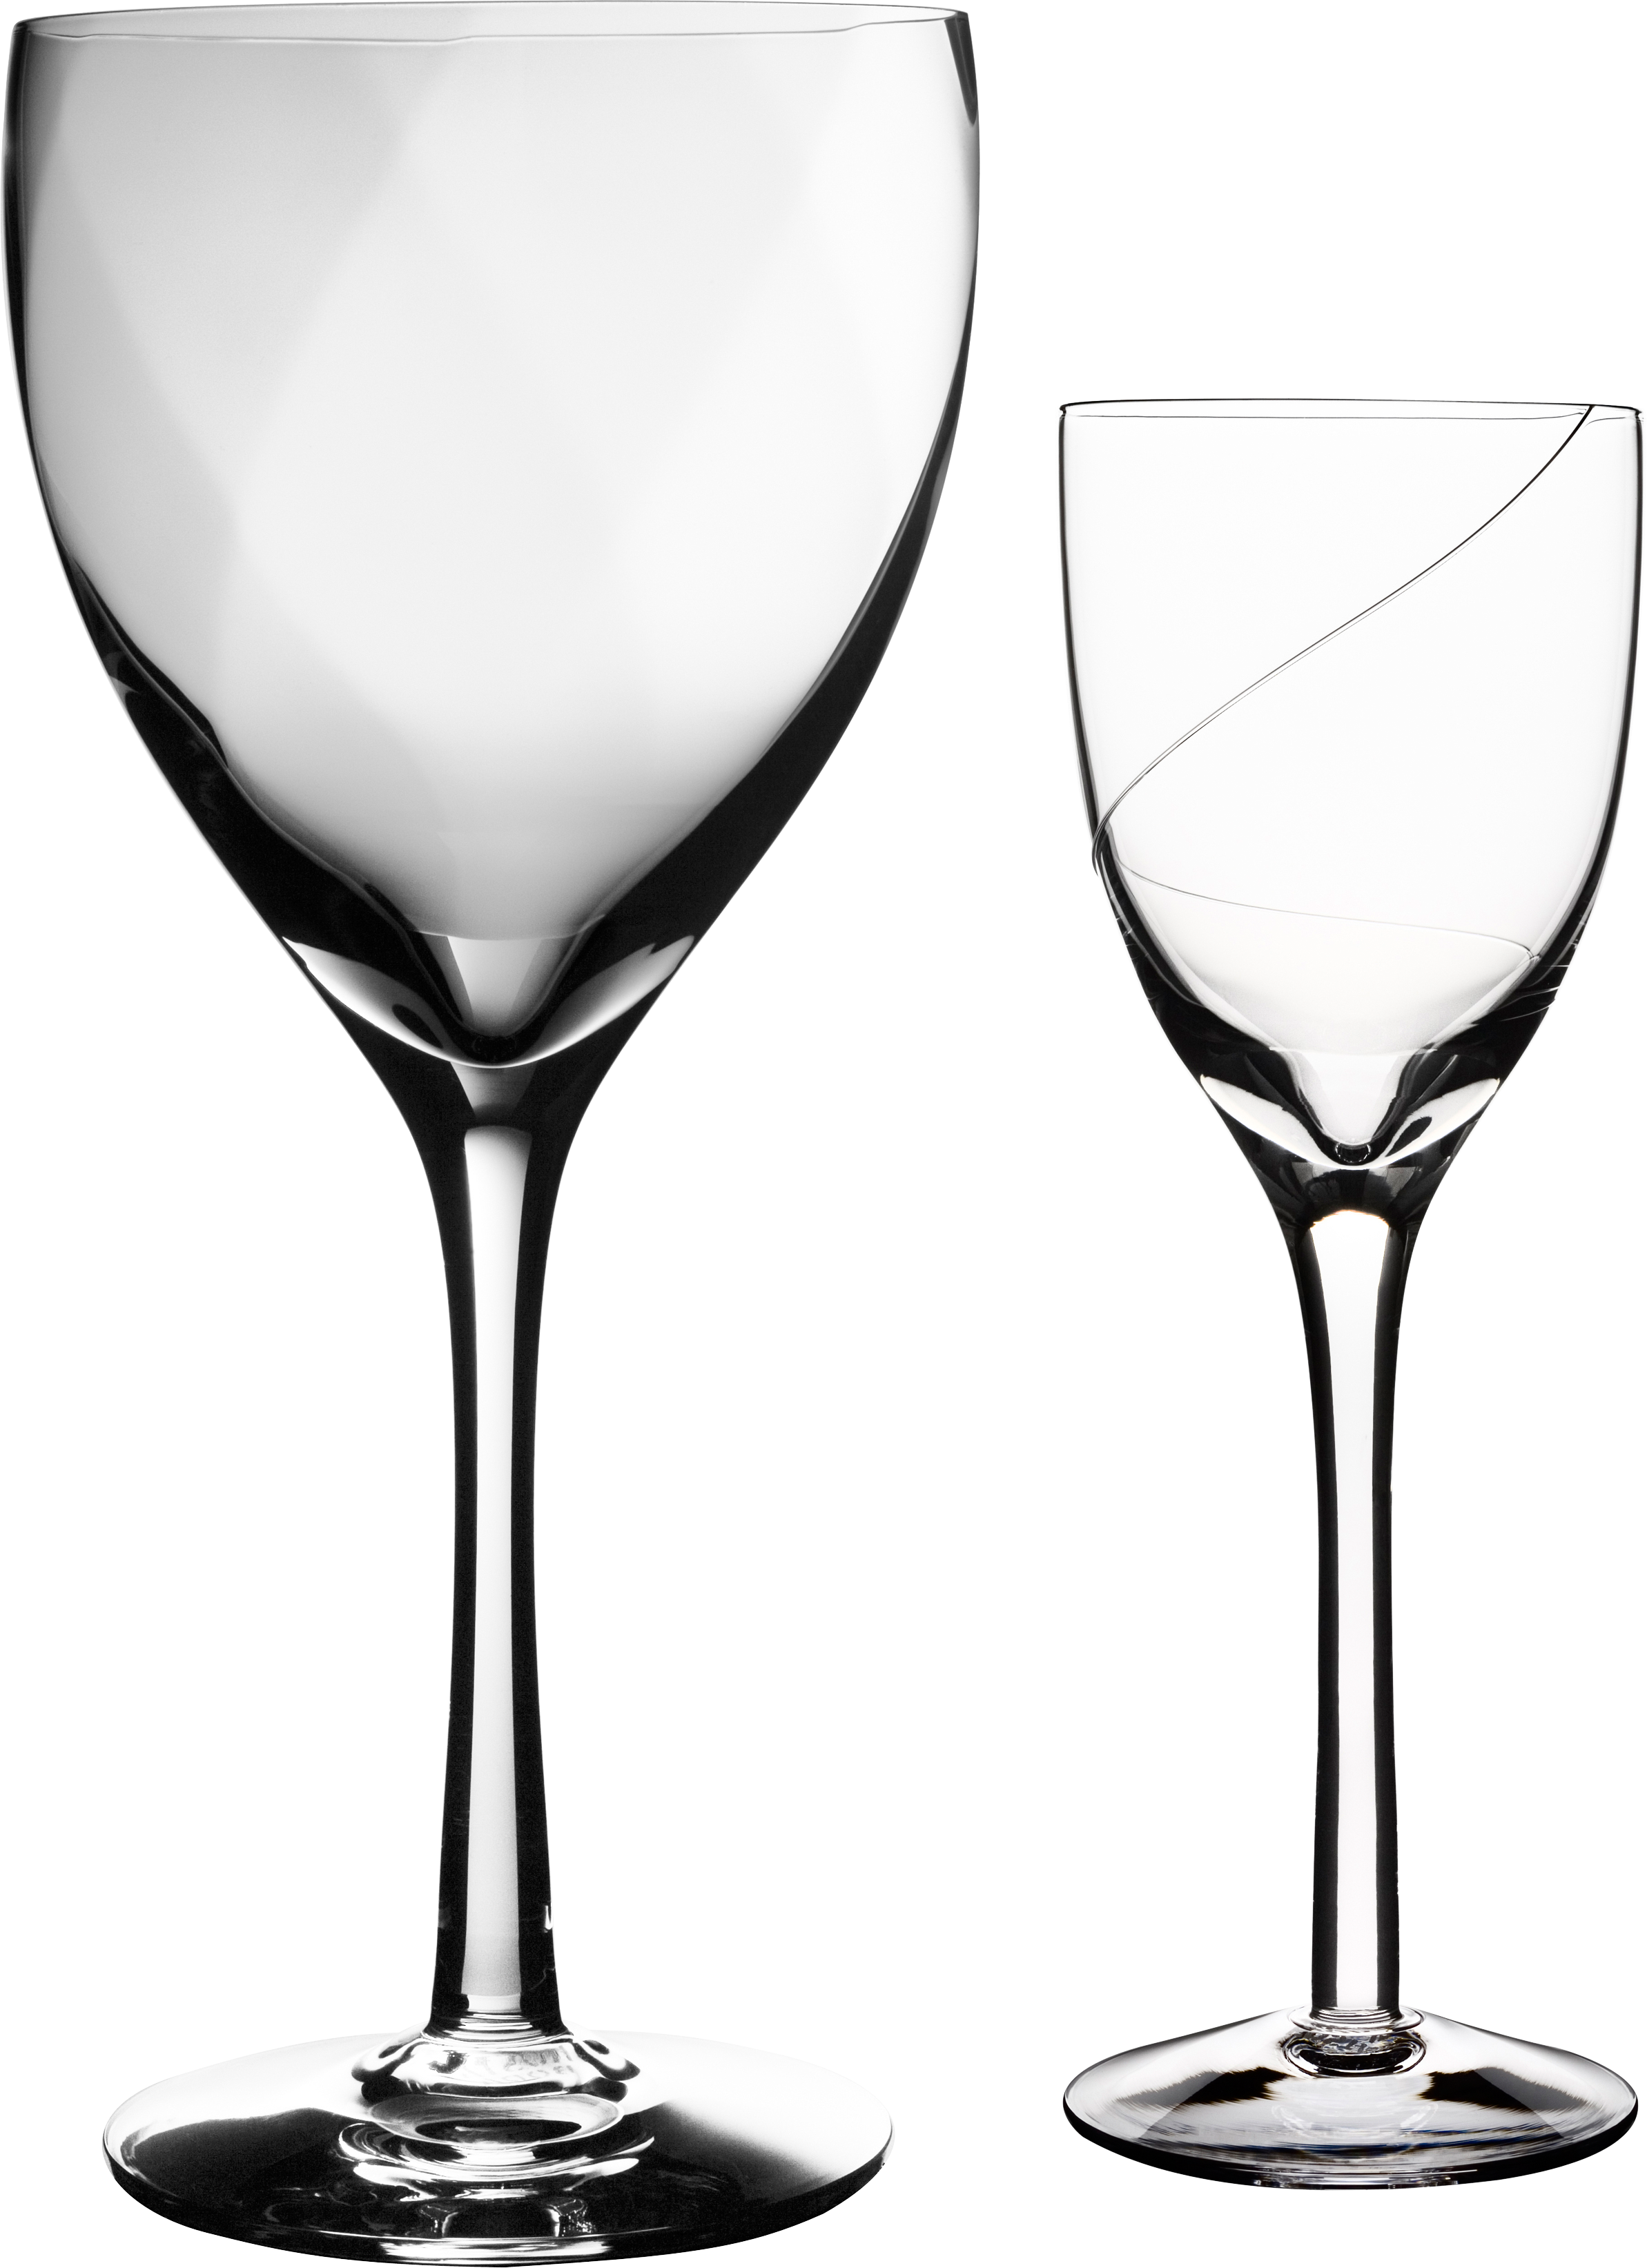 Cat wine glass clipart jpg black and white stock Empty Wine Glass Four   Isolated Stock Photo by noBACKS.com jpg black and white stock